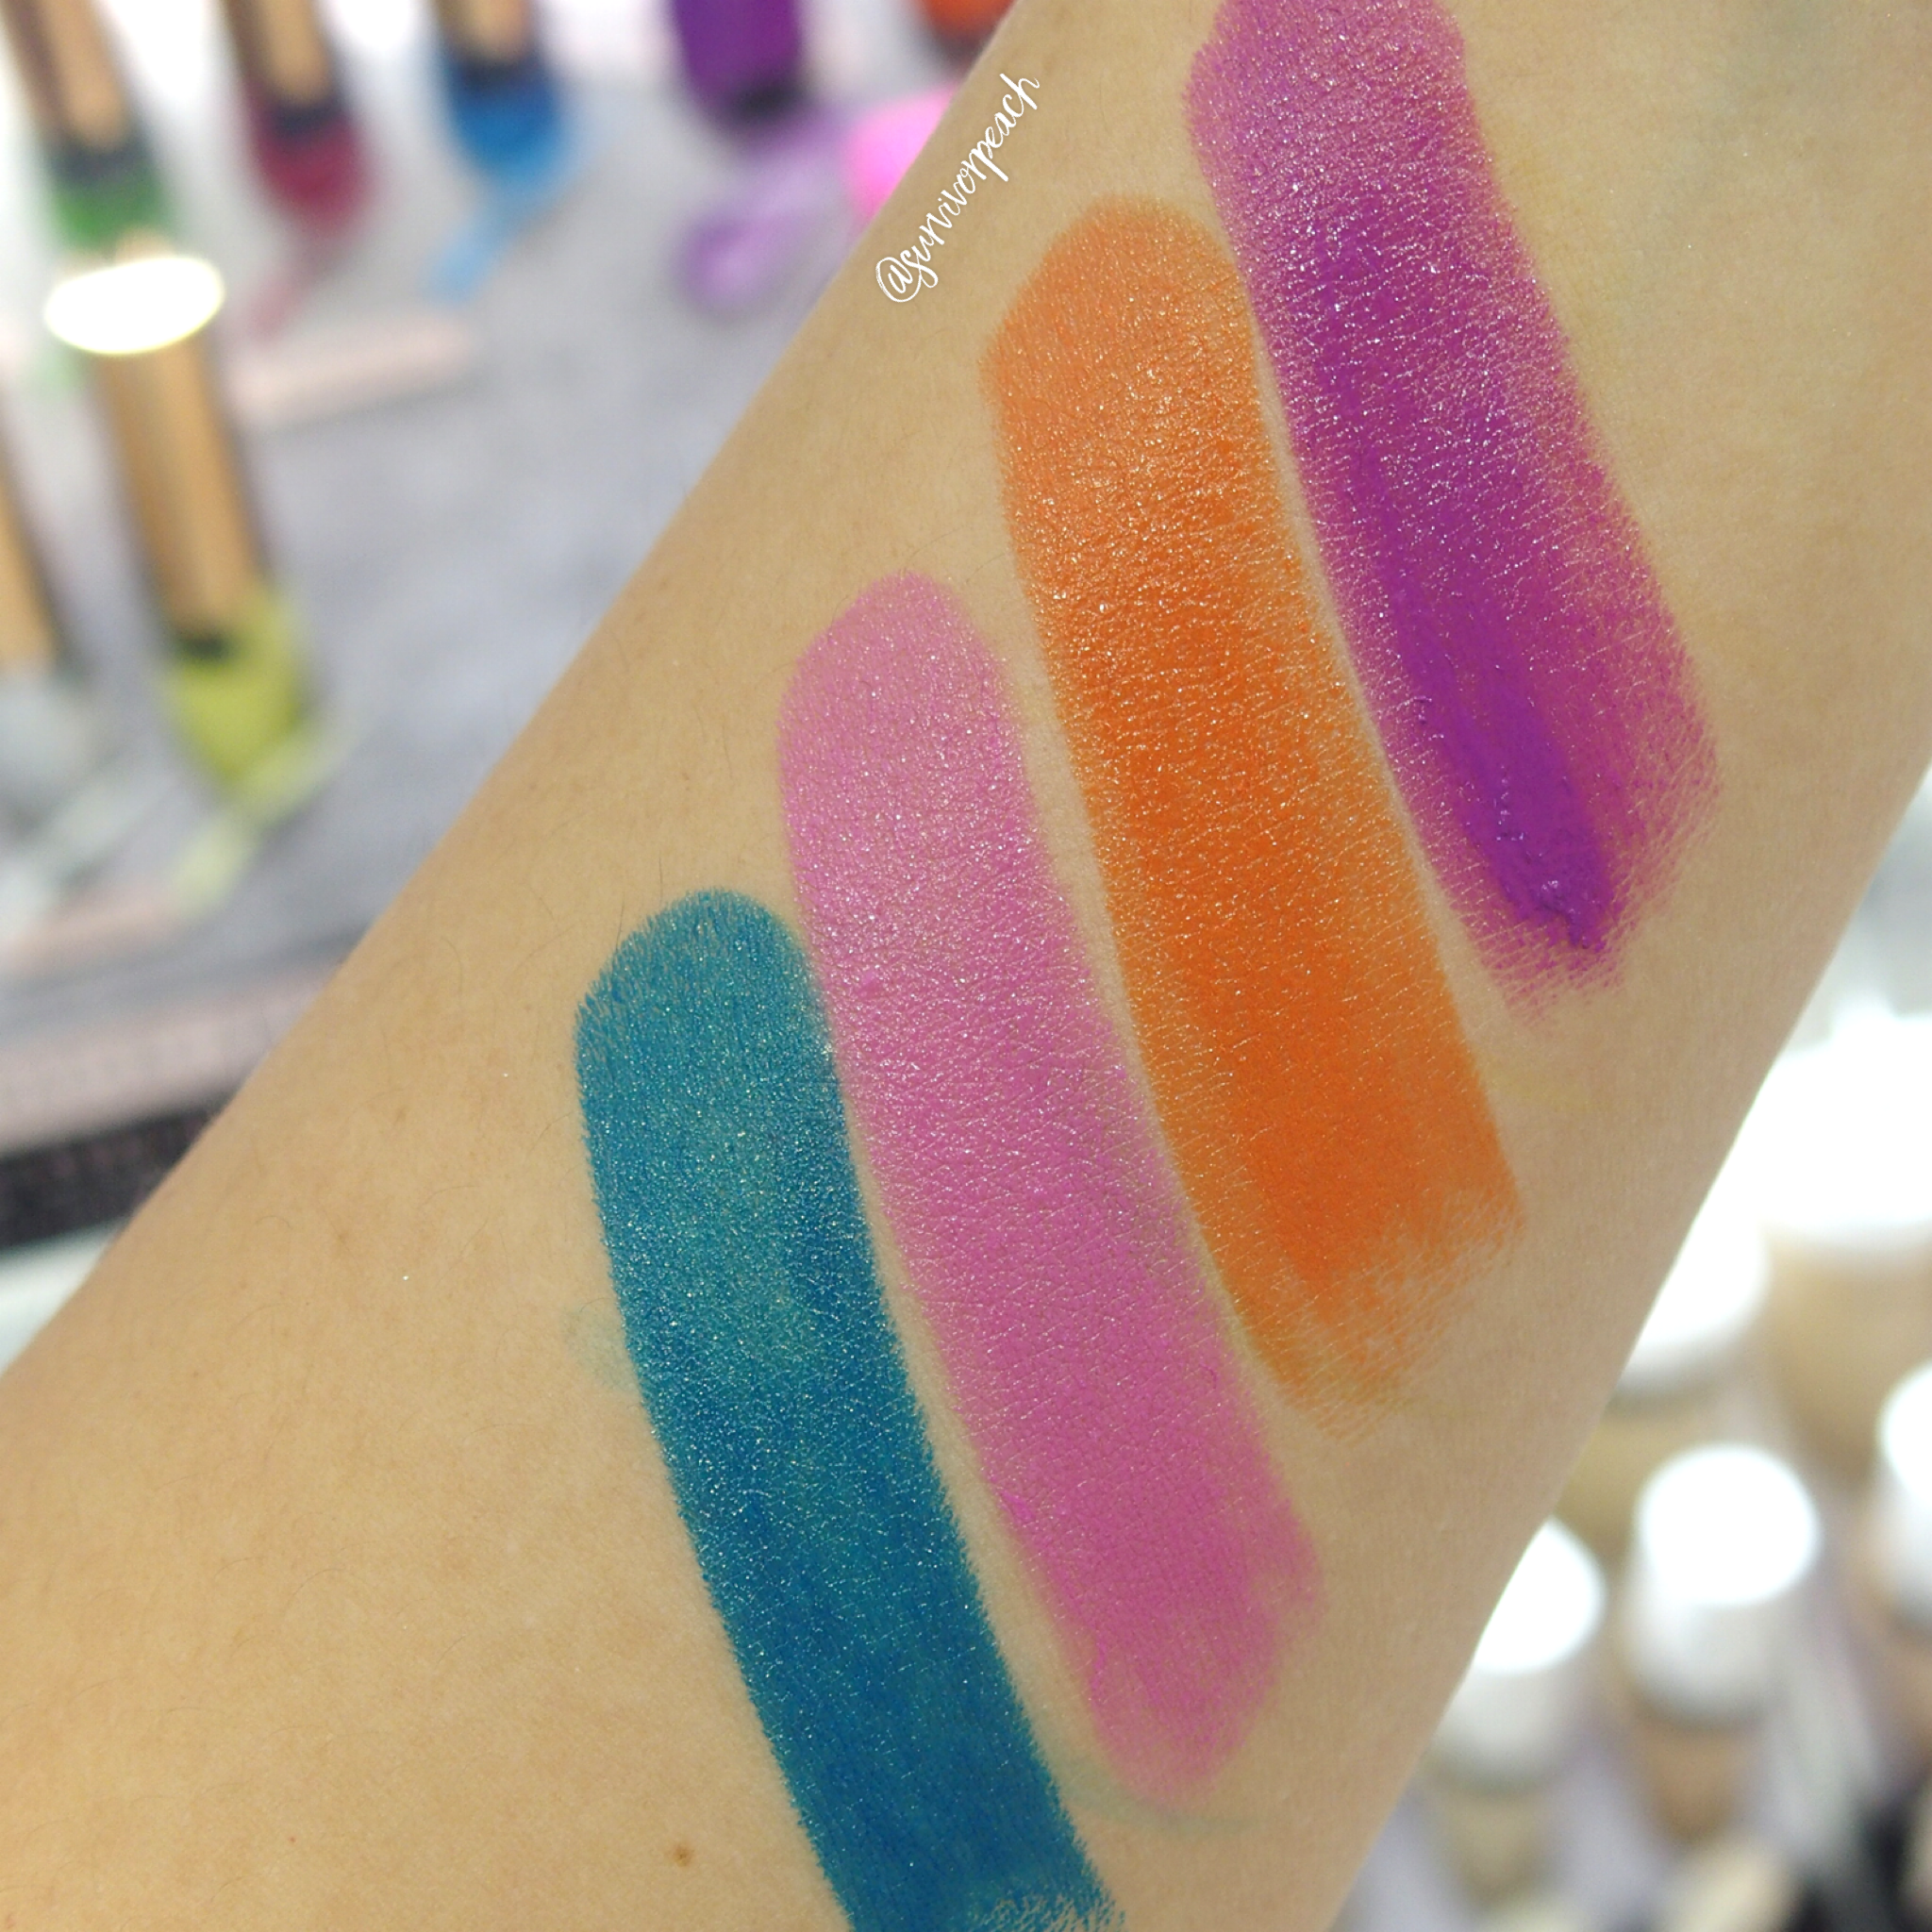 Swatches of the Fenty Beauty Poutisicle - Purpsicle, Sun Snatched, Alpha Doll, Go Deep